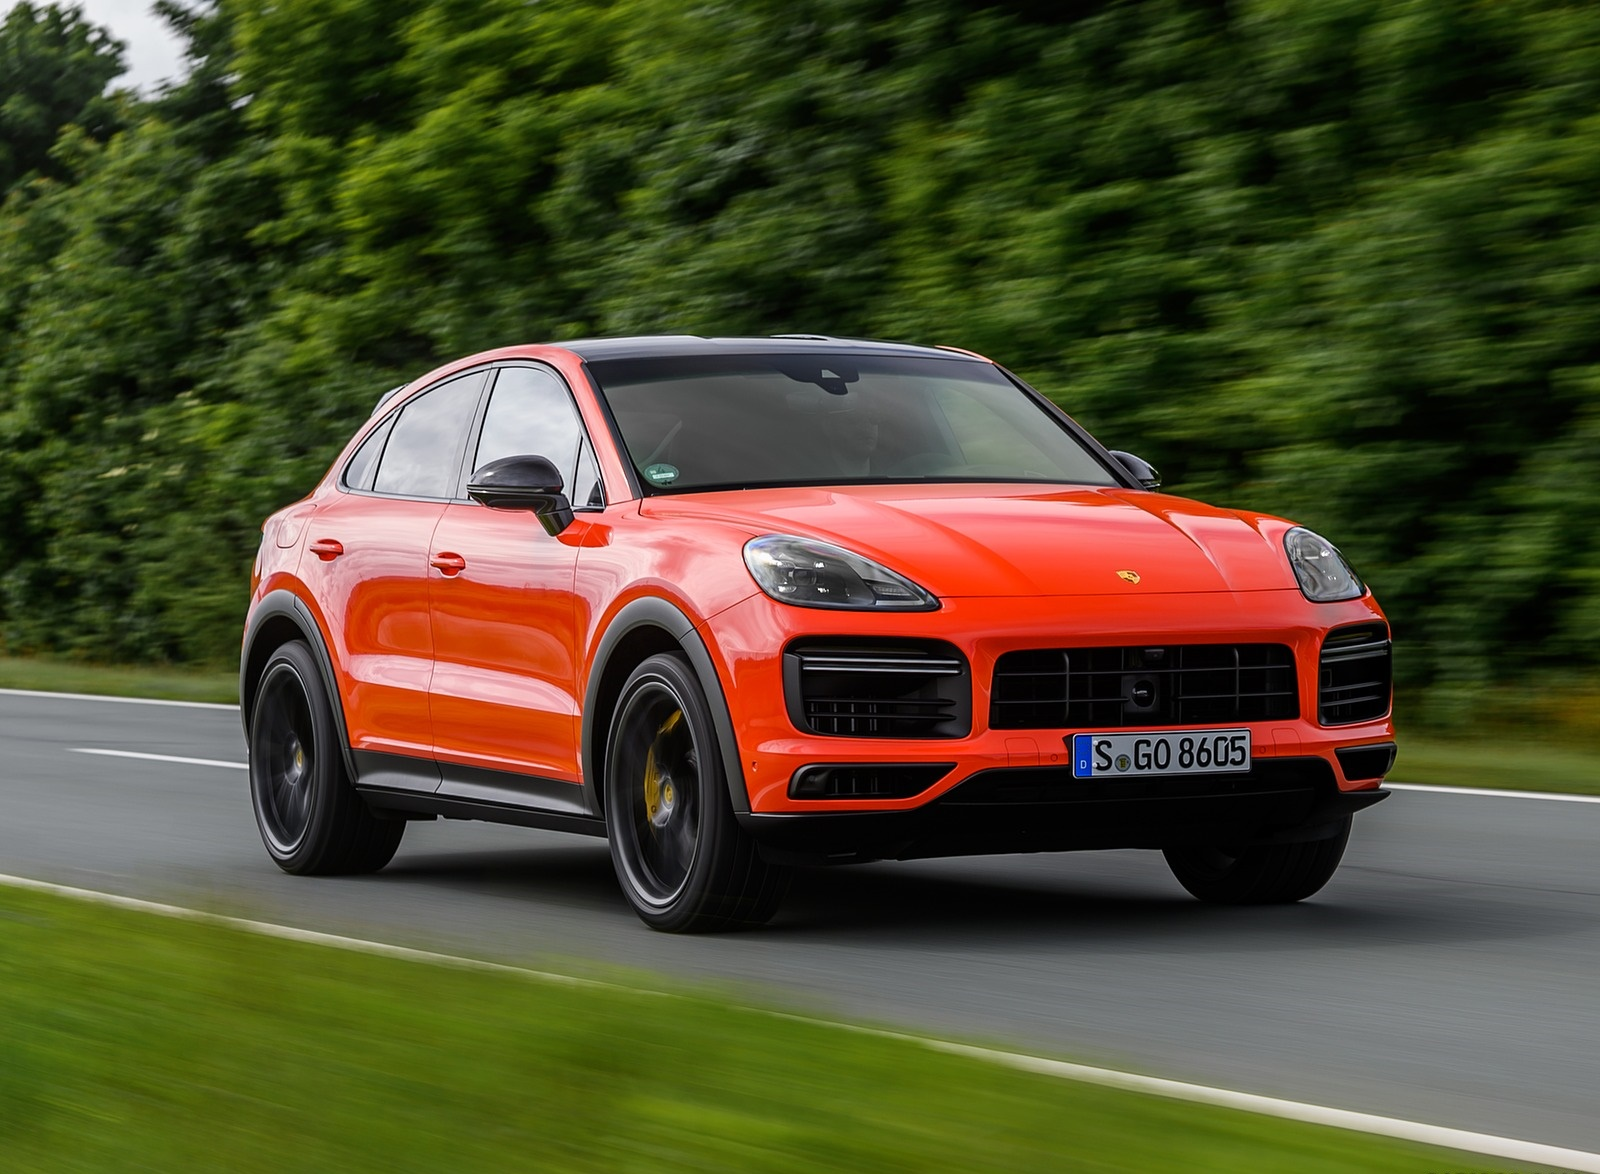 2020 Porsche Cayenne Coupe Price, Redesign >> 2020 Porsche Cayenne Turbo Coupe Wallpapers 71 Hd Images Newcarcars